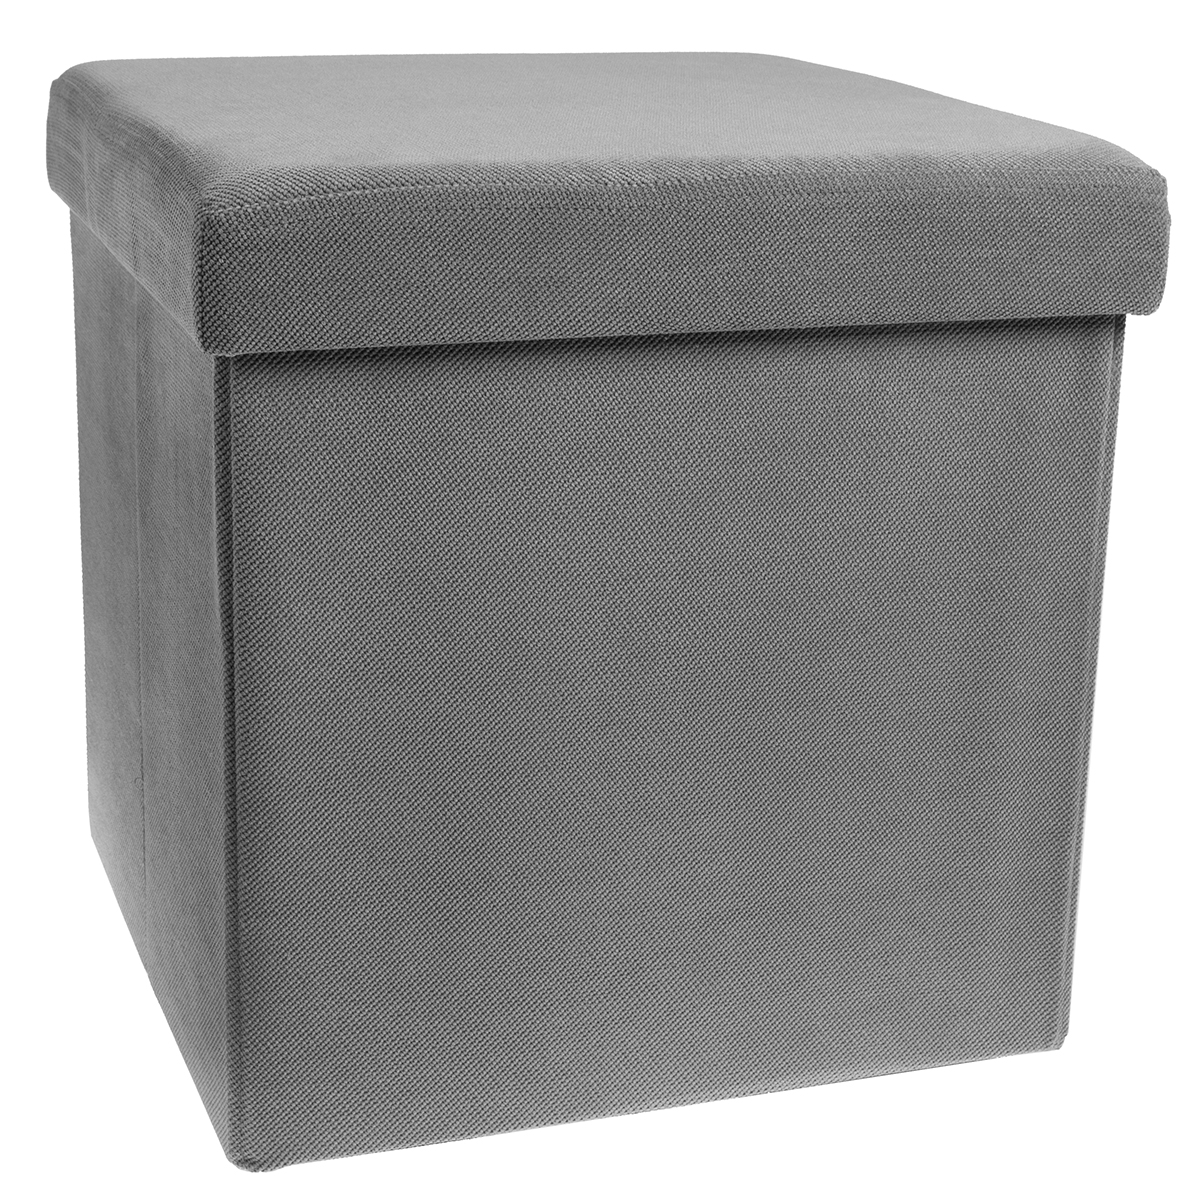 Storage ottoman cube folding fabric square foot rest for Foot storage ottoman